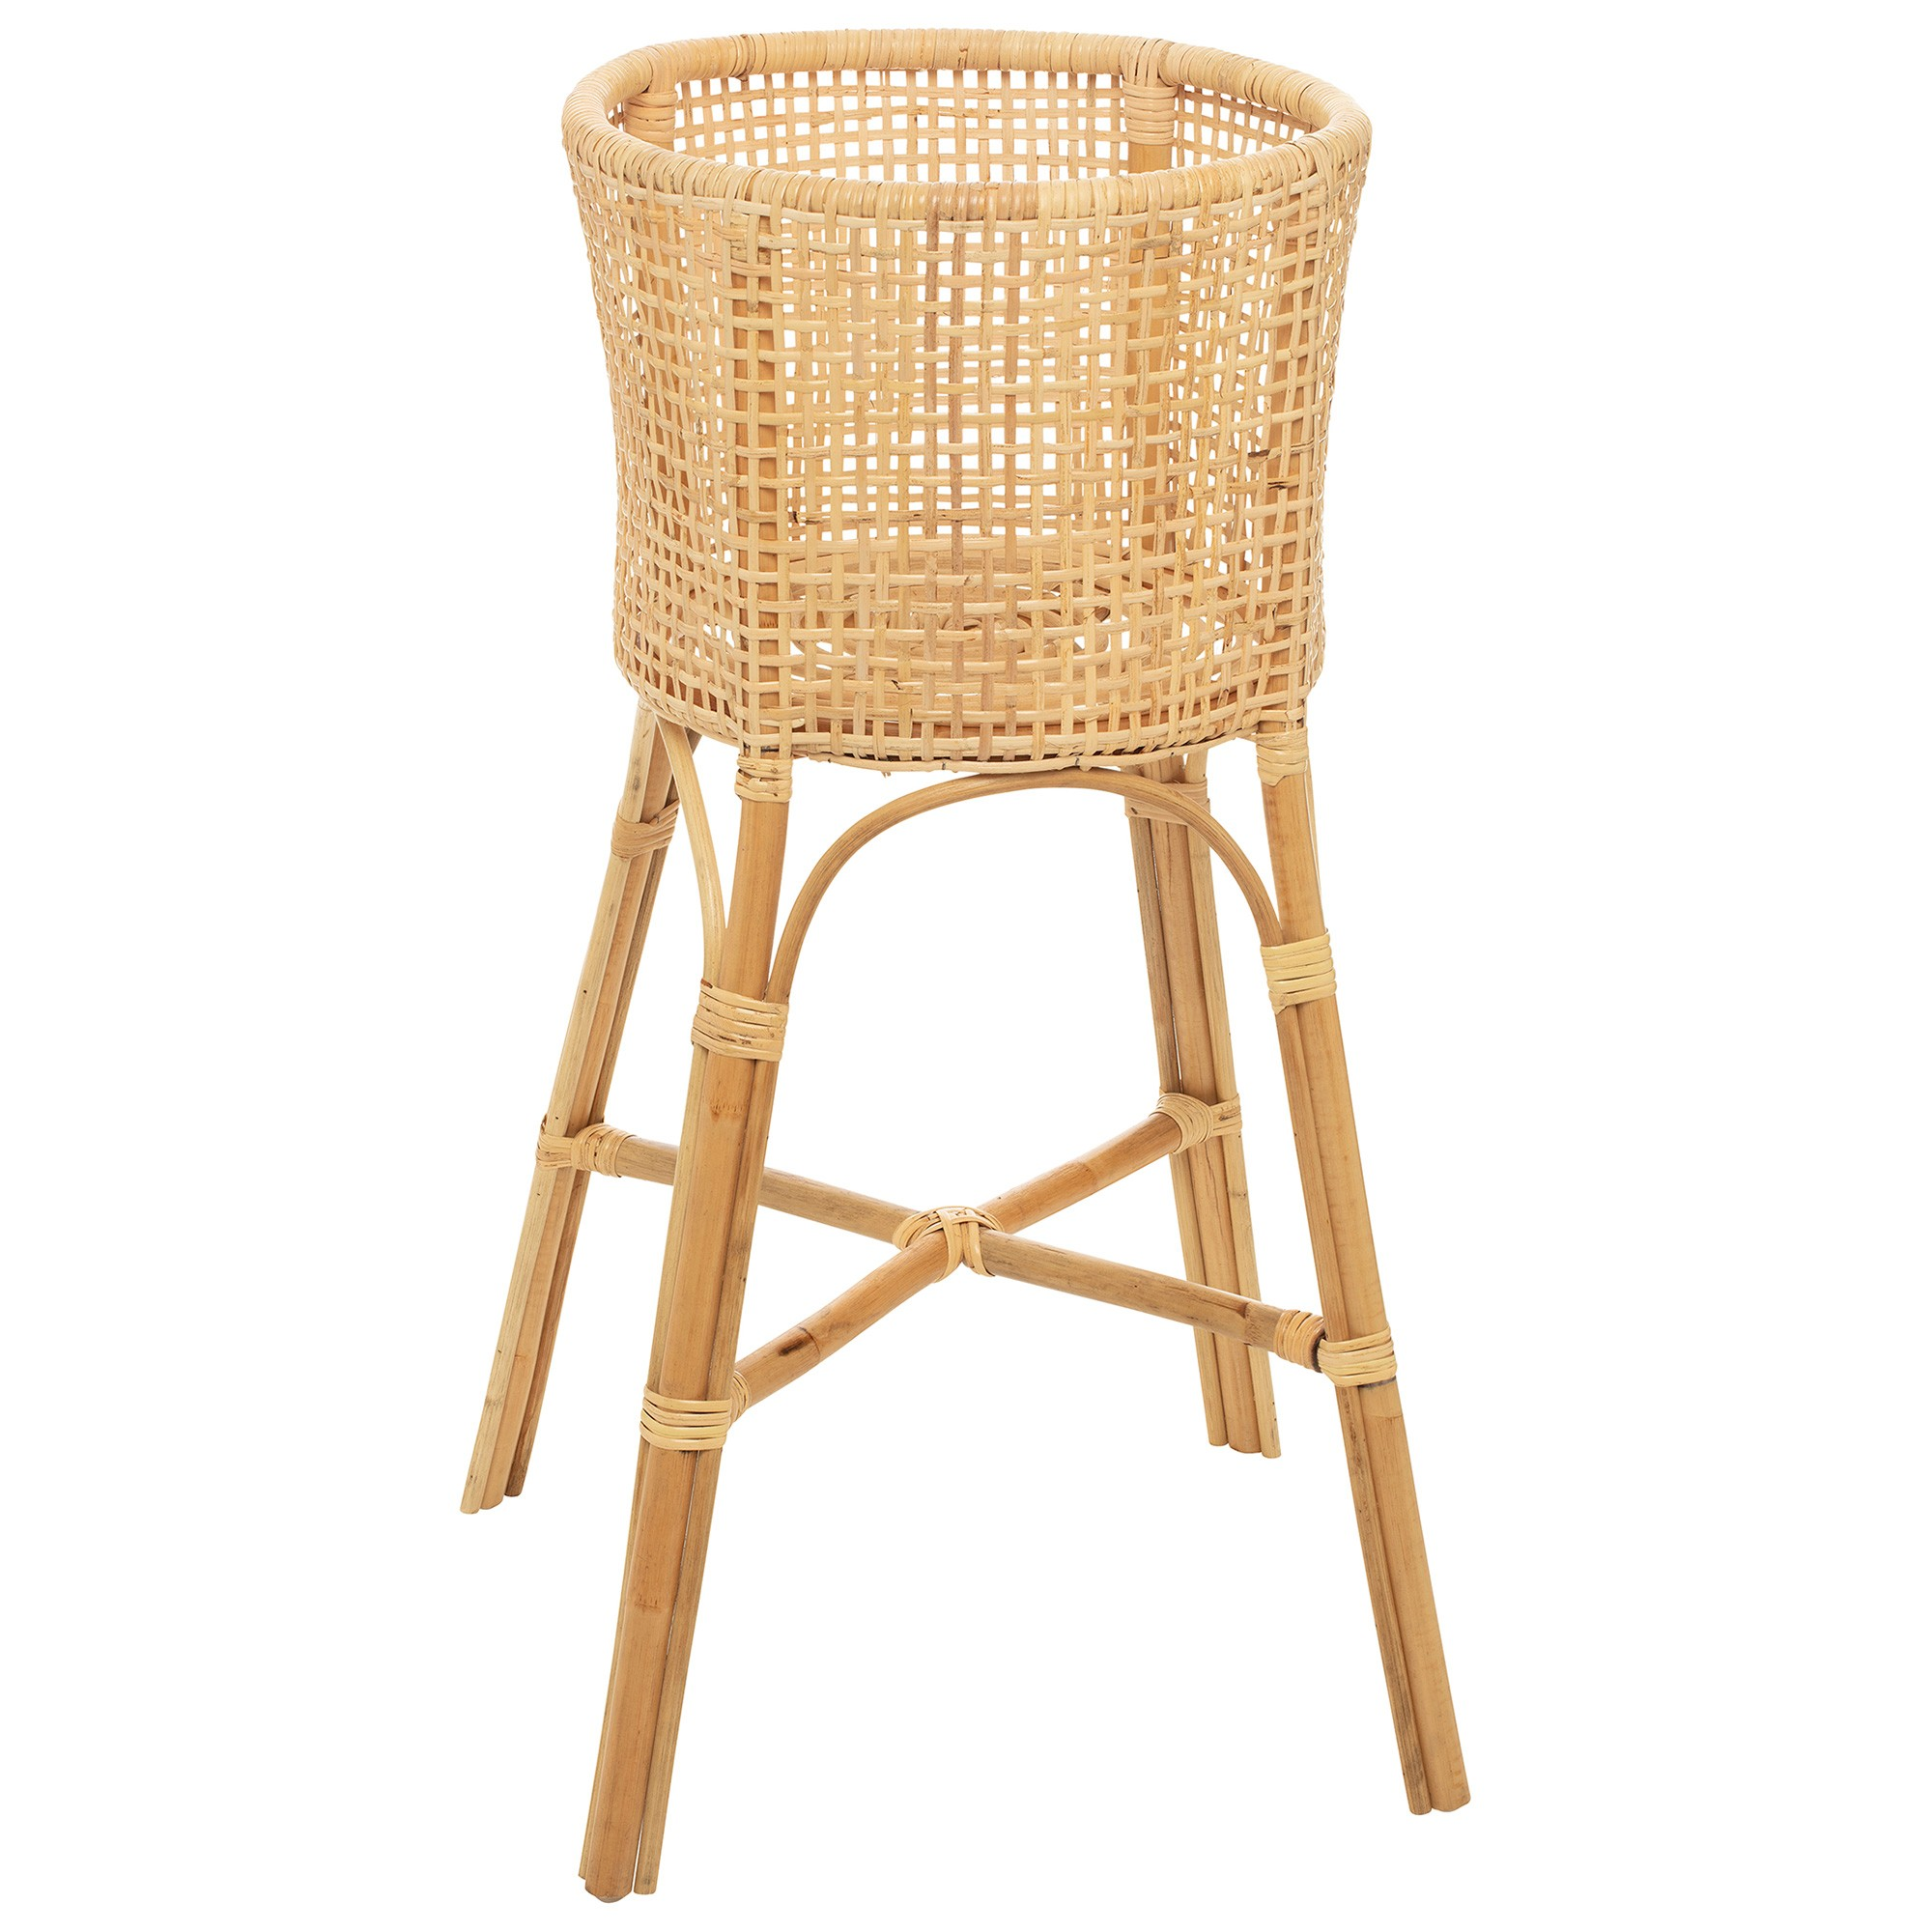 Westconsin Rattan Planter Stand, Natural